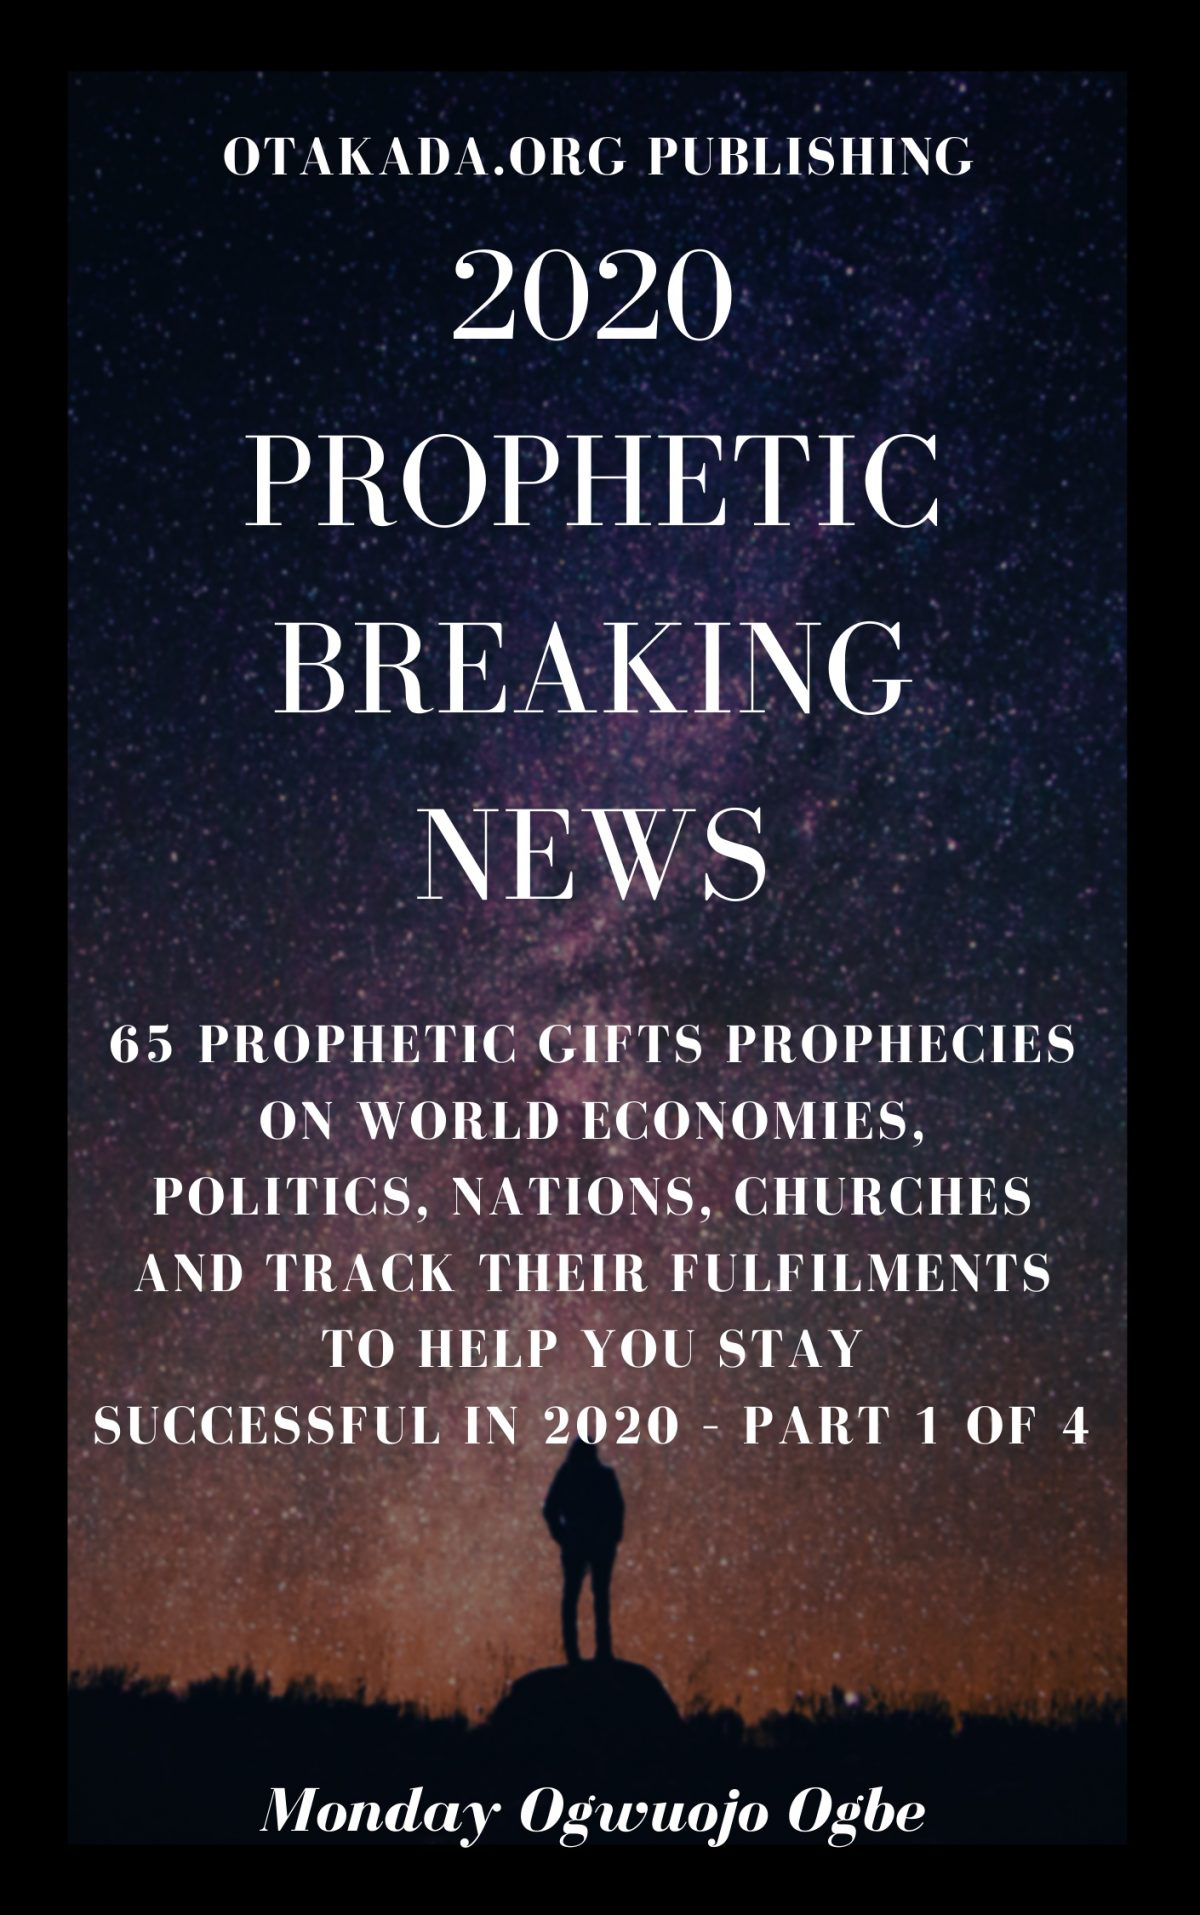 2020 Prophetic Breaking News 65 Prophetic Gifts Prophecies on World Economies, Politics, Nations, Churches and Track their Fulfilments to Help You Stay Successful in 2020 – Part 1 of 4